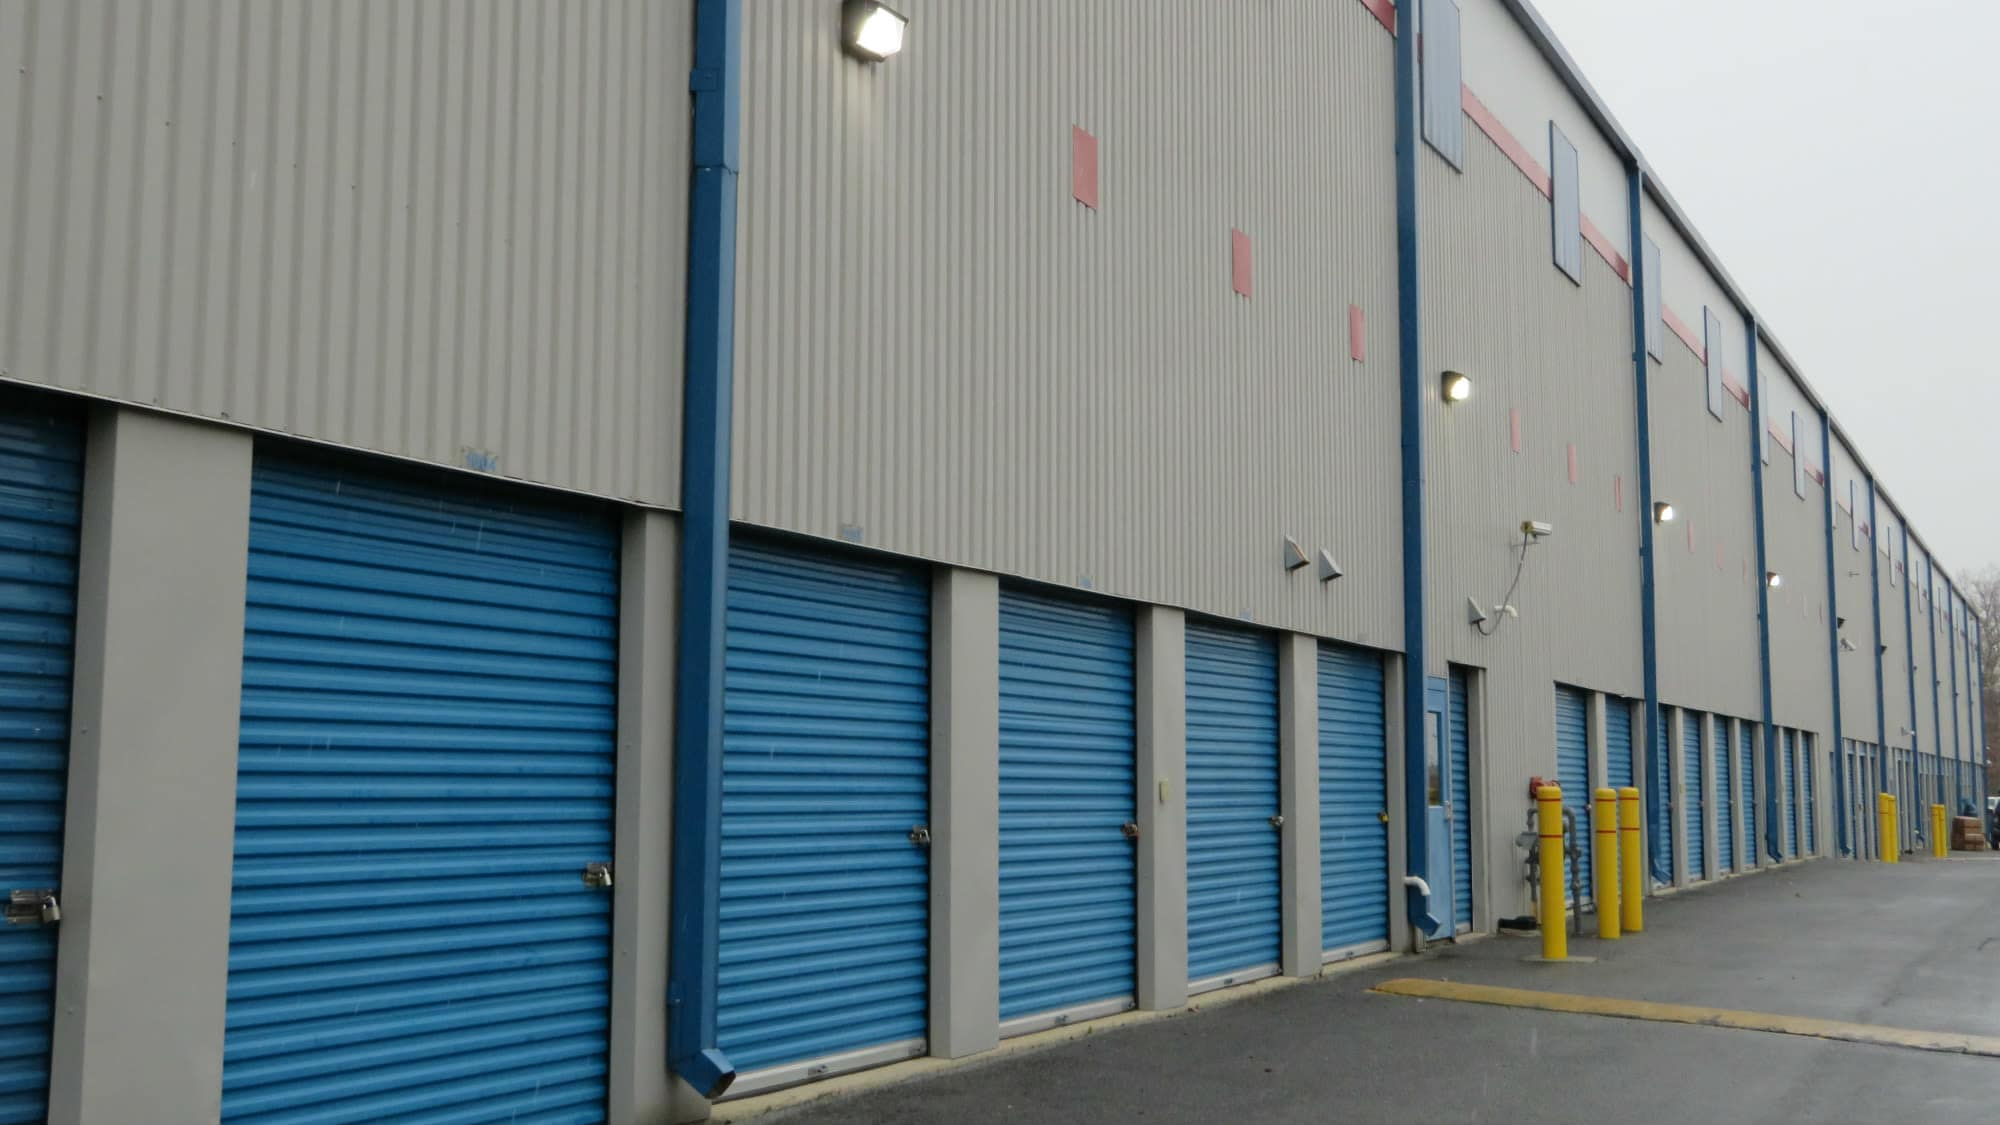 Ground-level units at Self Storage Plus in Silver Spring, MD